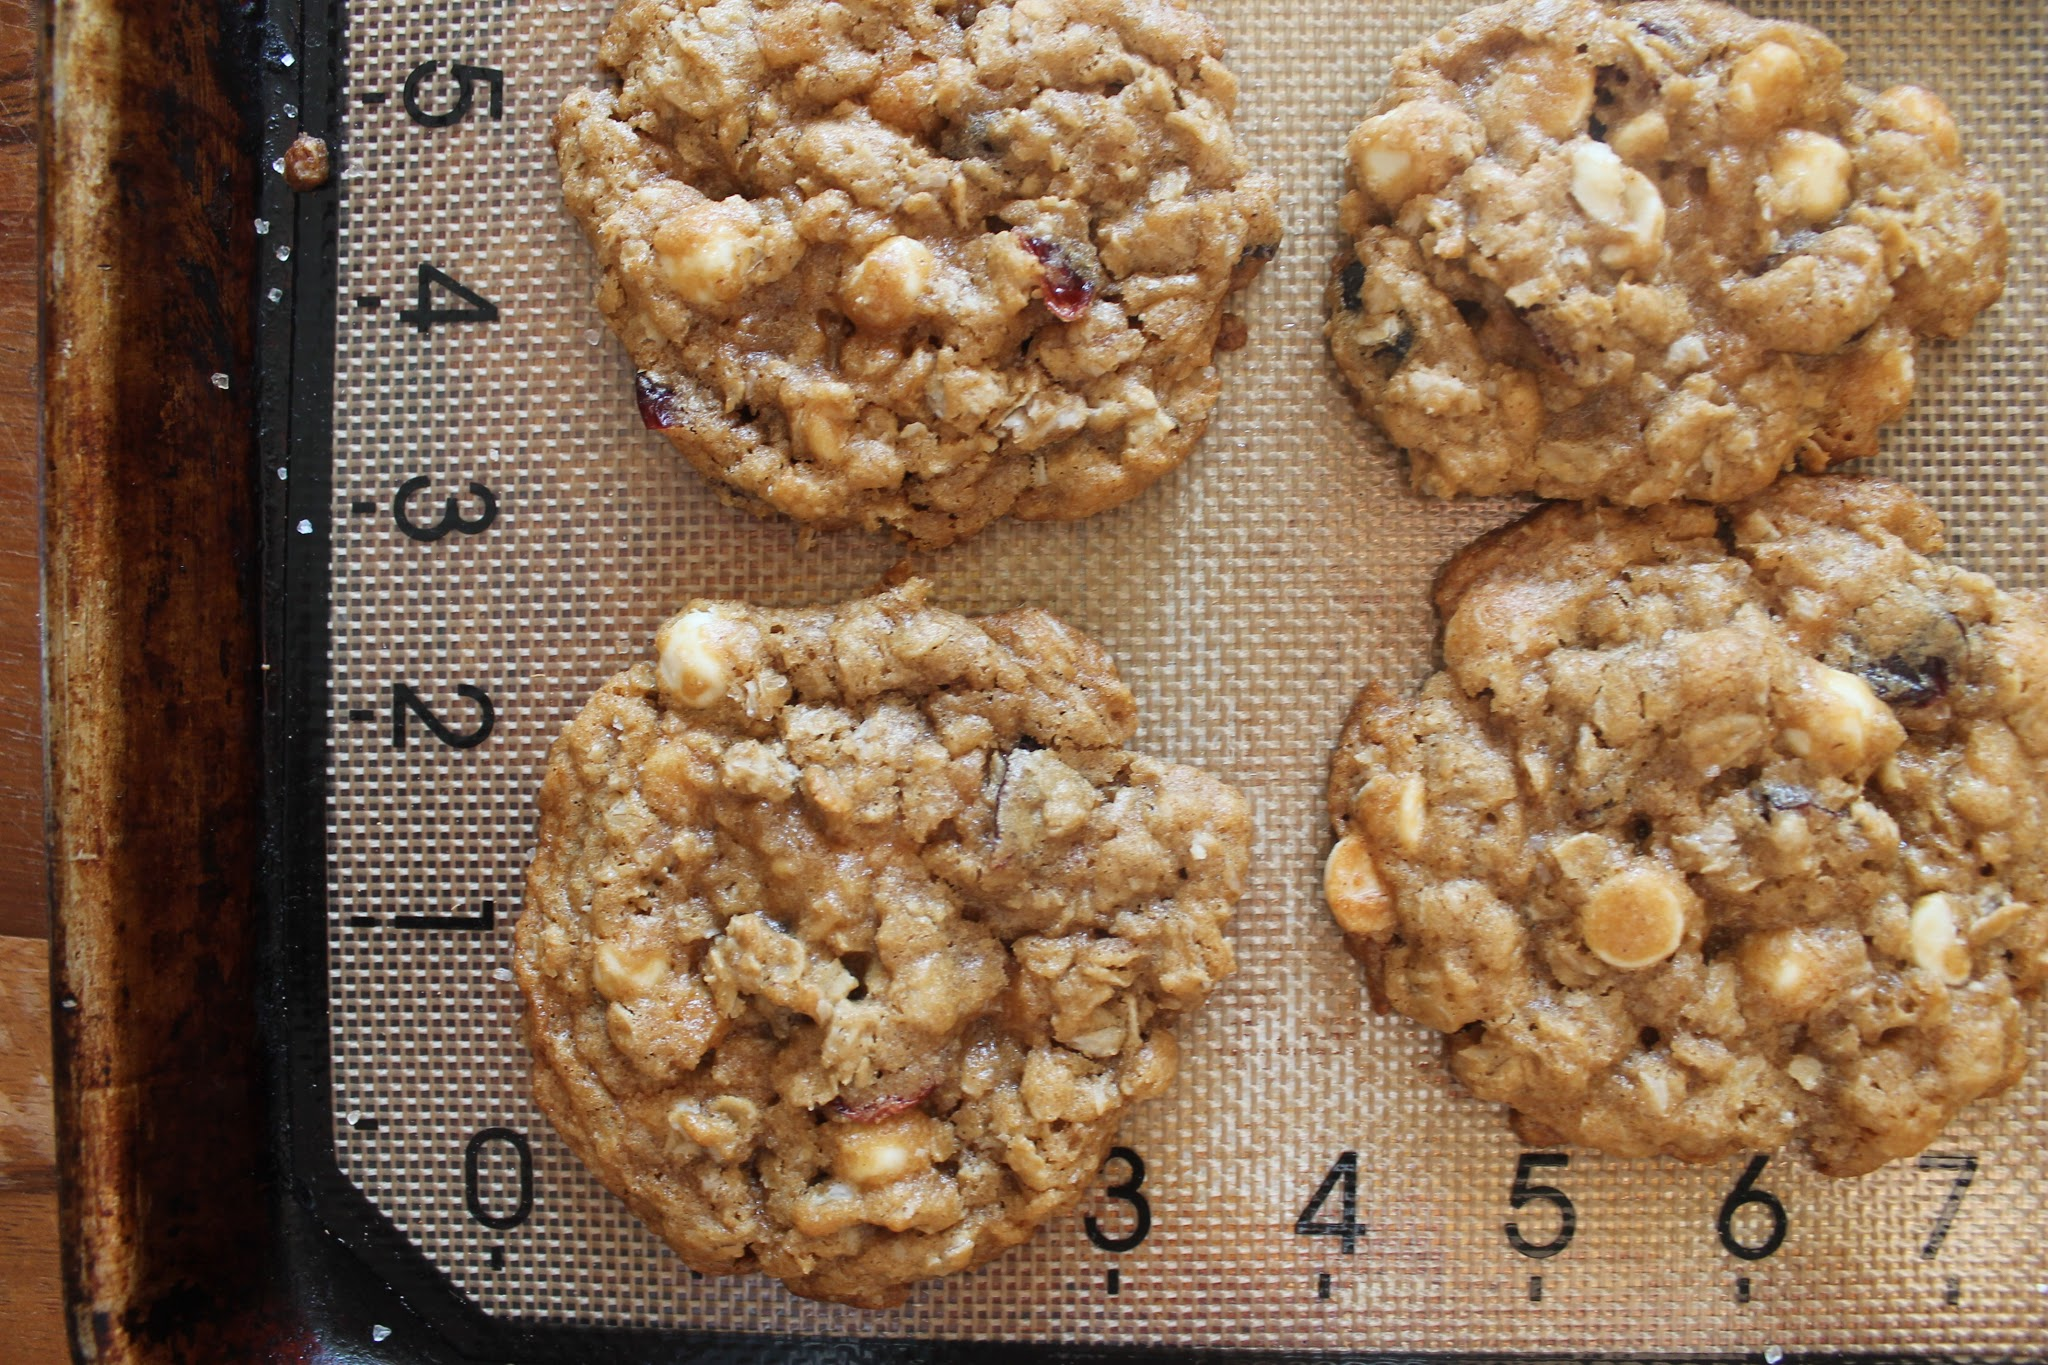 Oatmeal White Chocolate Cranberry Cookies (Gluten Free)